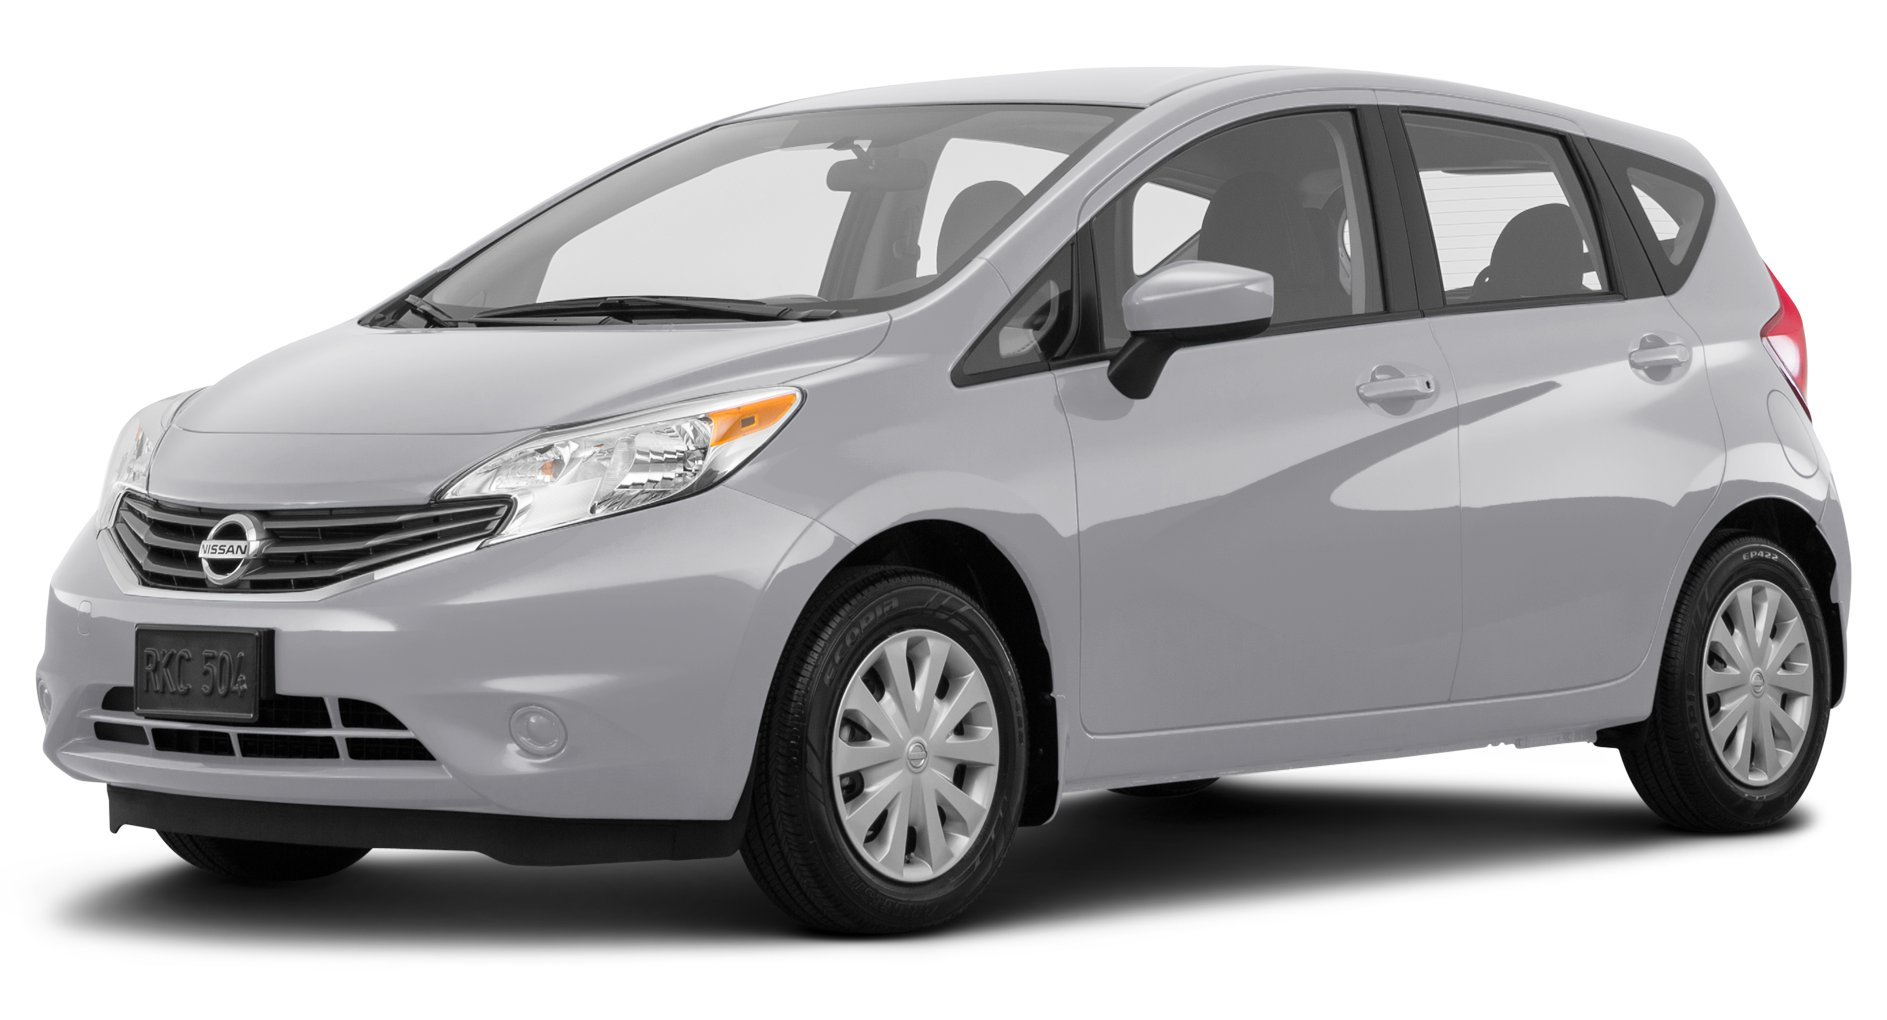 2016 nissan versa note reviews images and specs vehicles. Black Bedroom Furniture Sets. Home Design Ideas